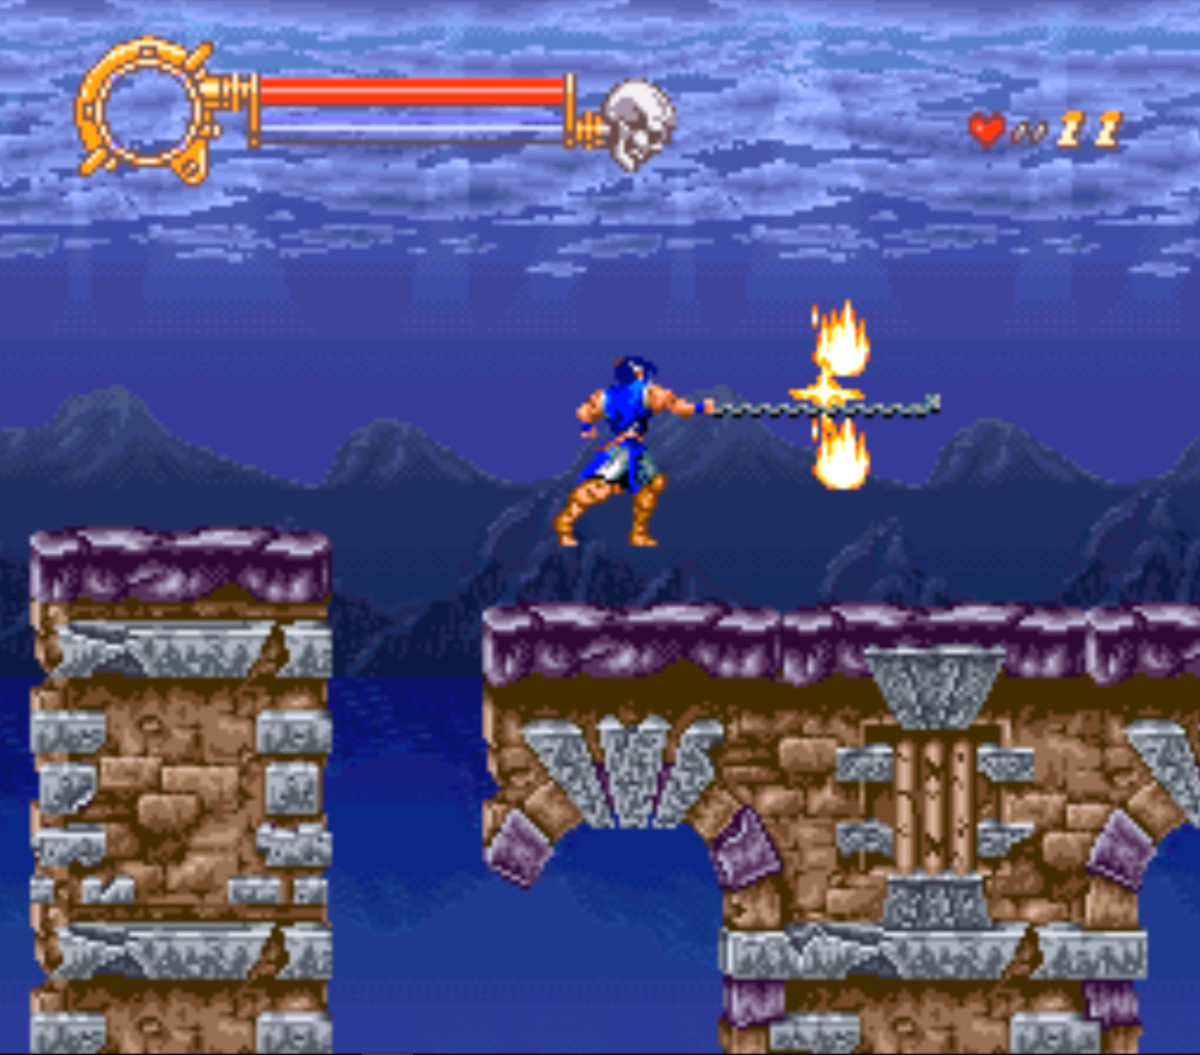 Rondo of Blood was ported over to the SNES as Dracula XX. Unfortunately, the reduced mechanics and gameplay did not go down well with gamers.